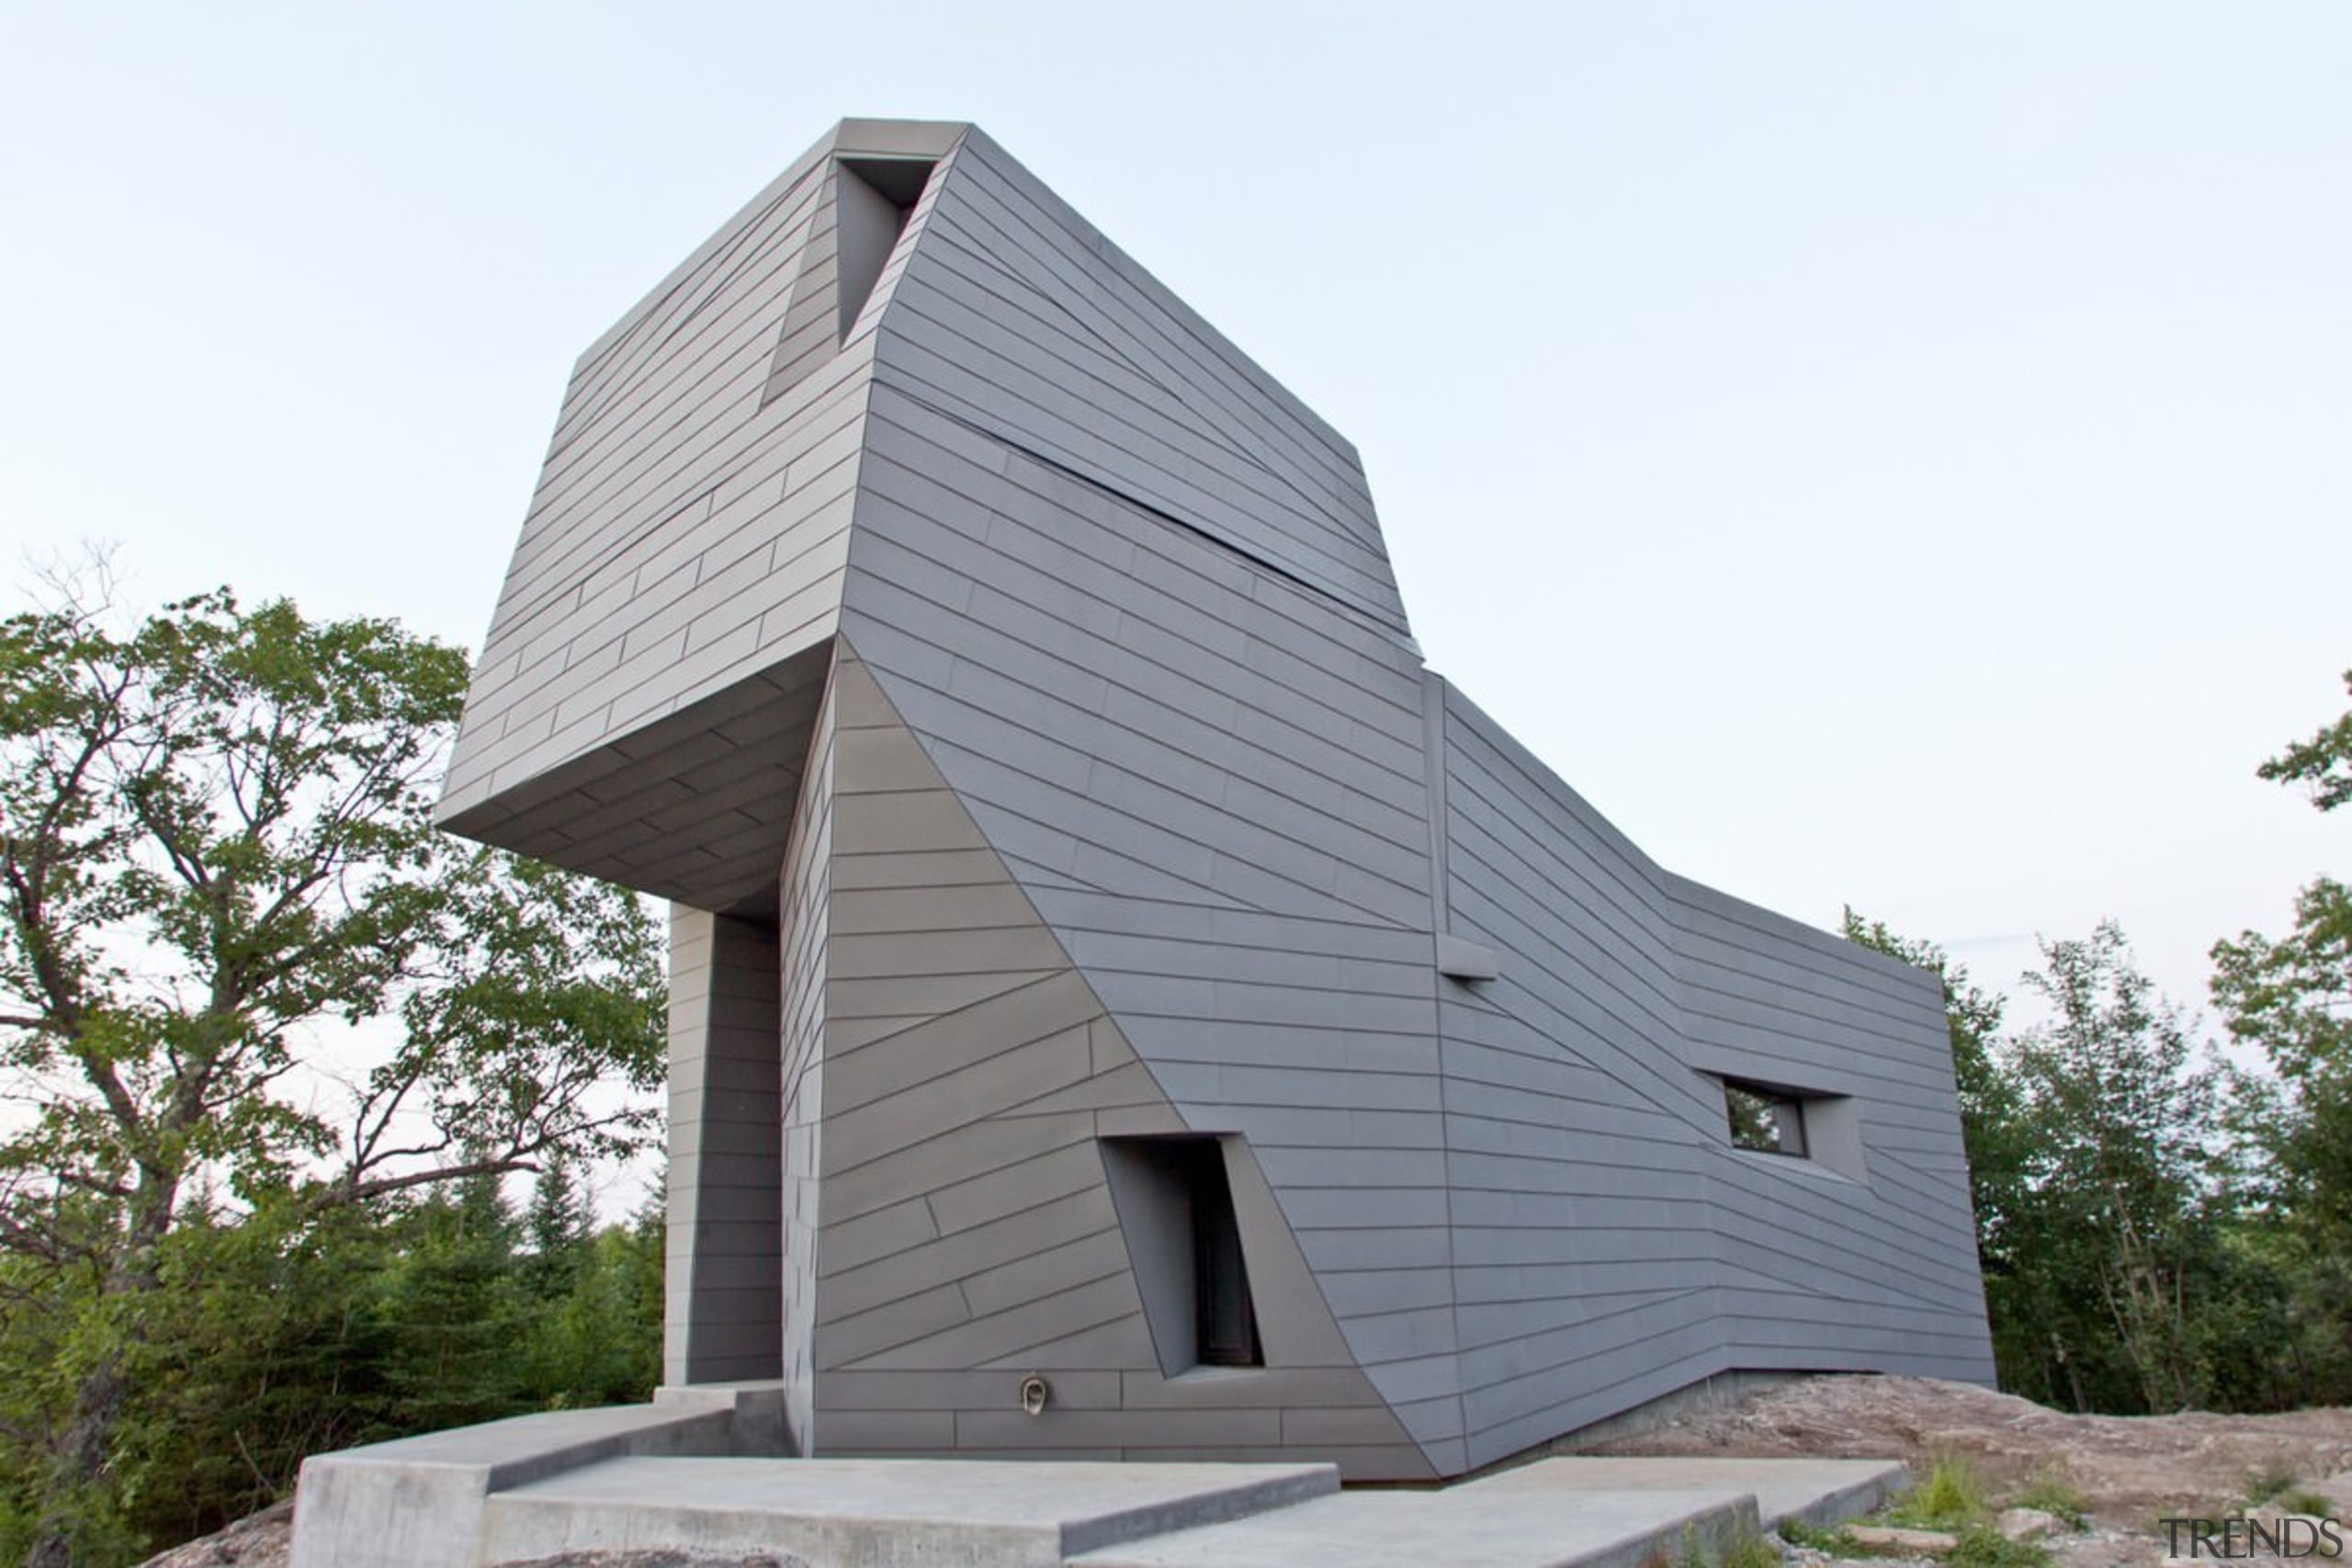 The rotating structure in the default position - architecture, barn, building, facade, home, house, siding, white, gray